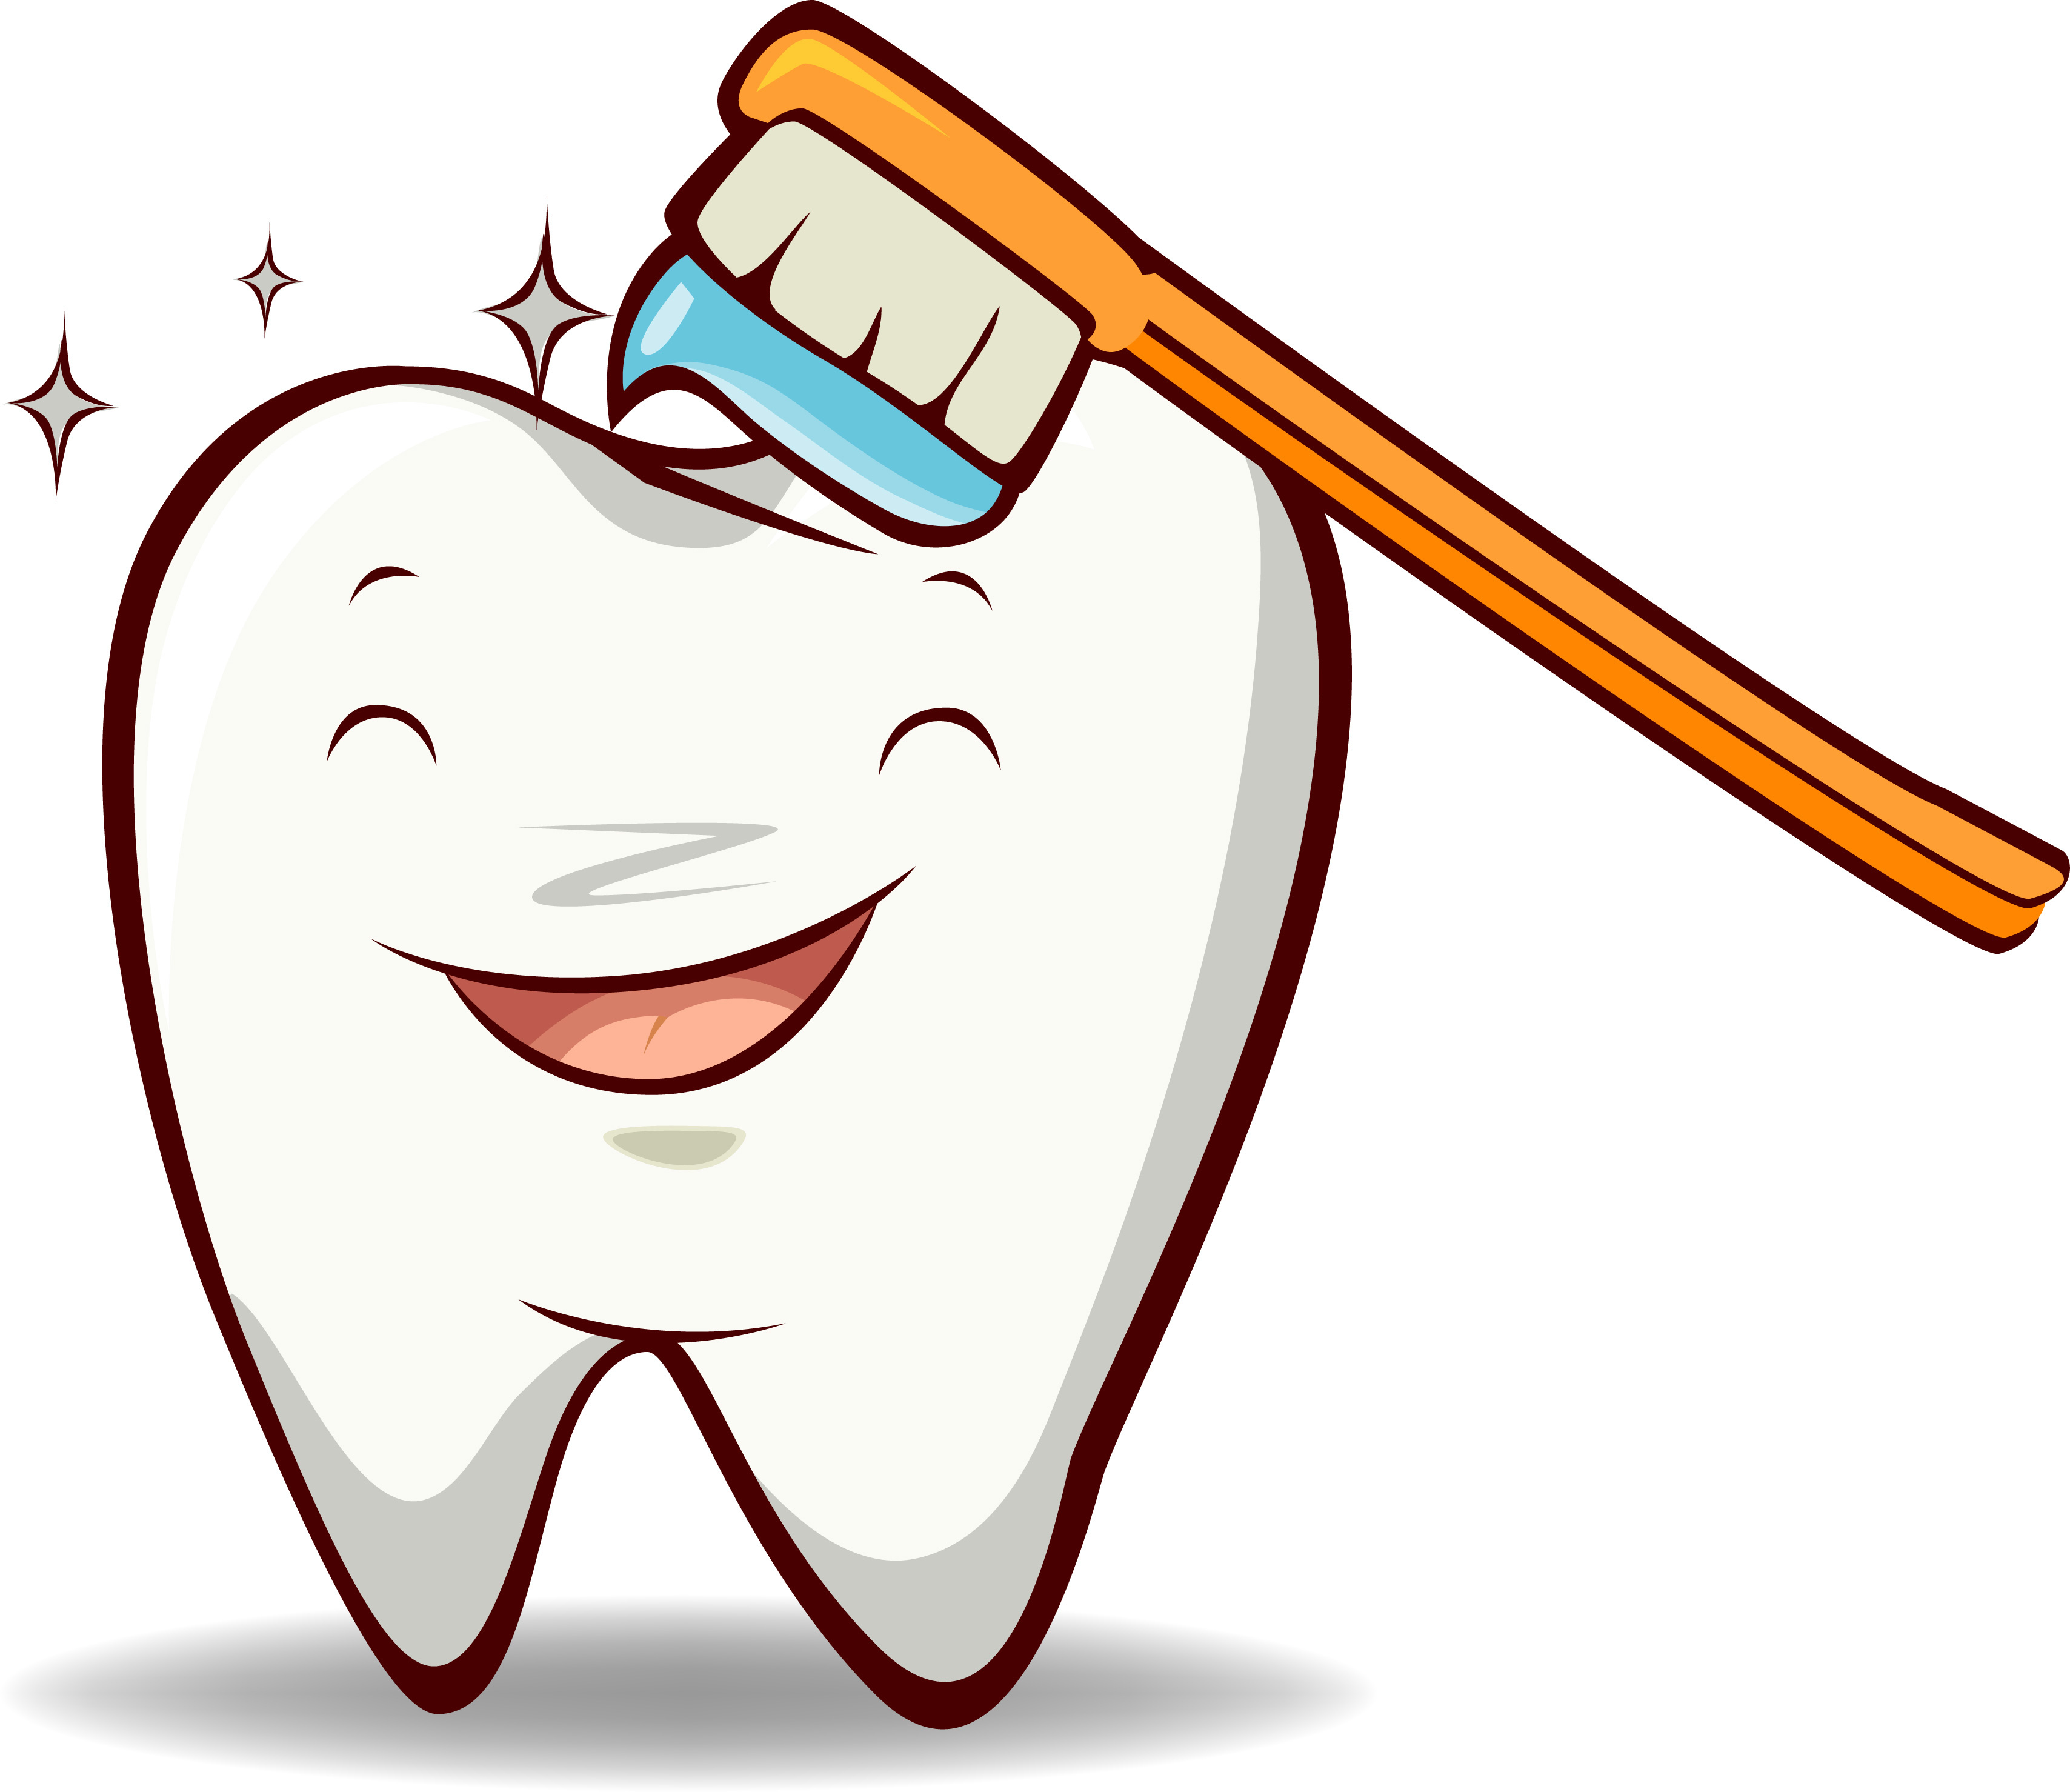 Tooth caricature clipart picture free Free Teeth Cliparts, Download Free Clip Art, Free Clip Art on ... picture free